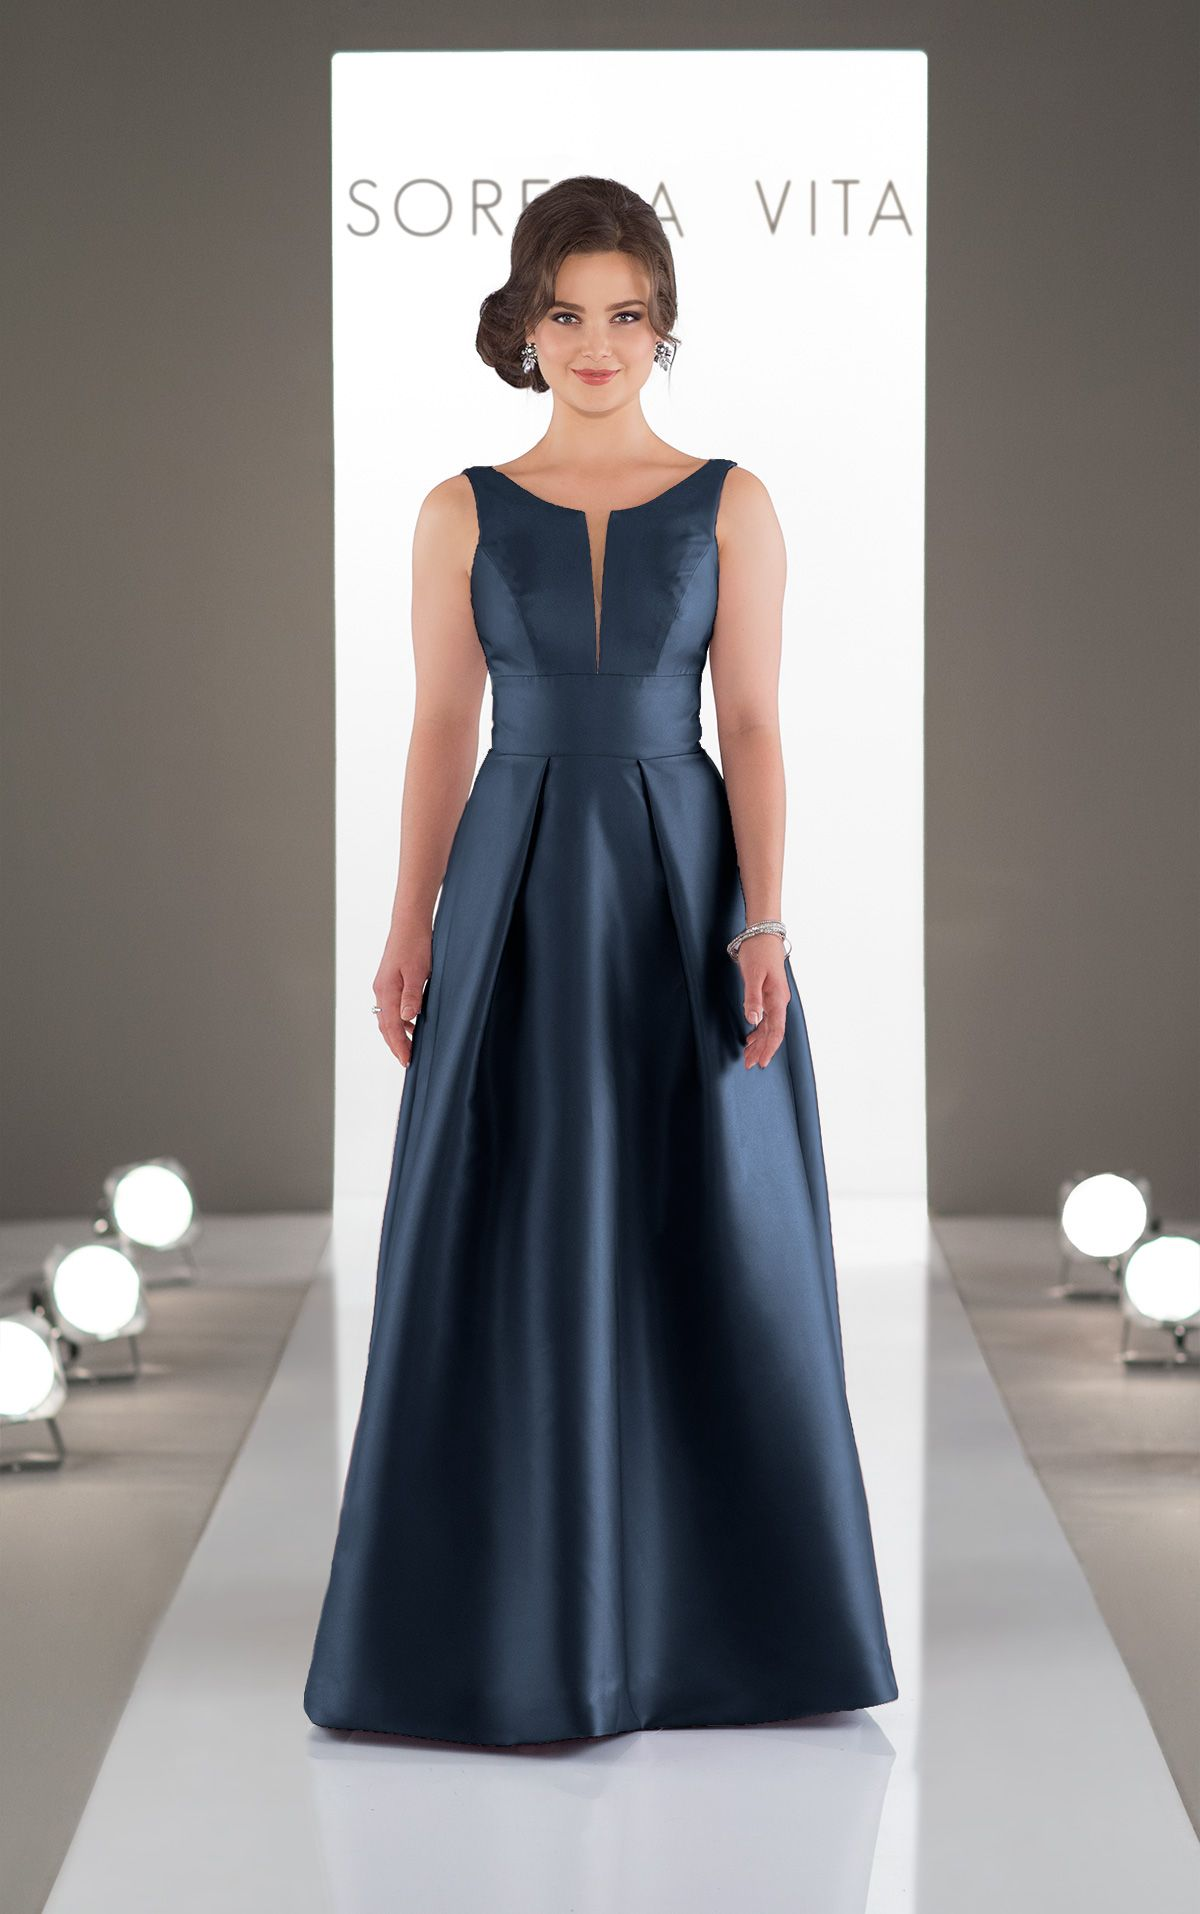 4fdbf385640 Classic and Simple Bridesmaid Dress in 2019